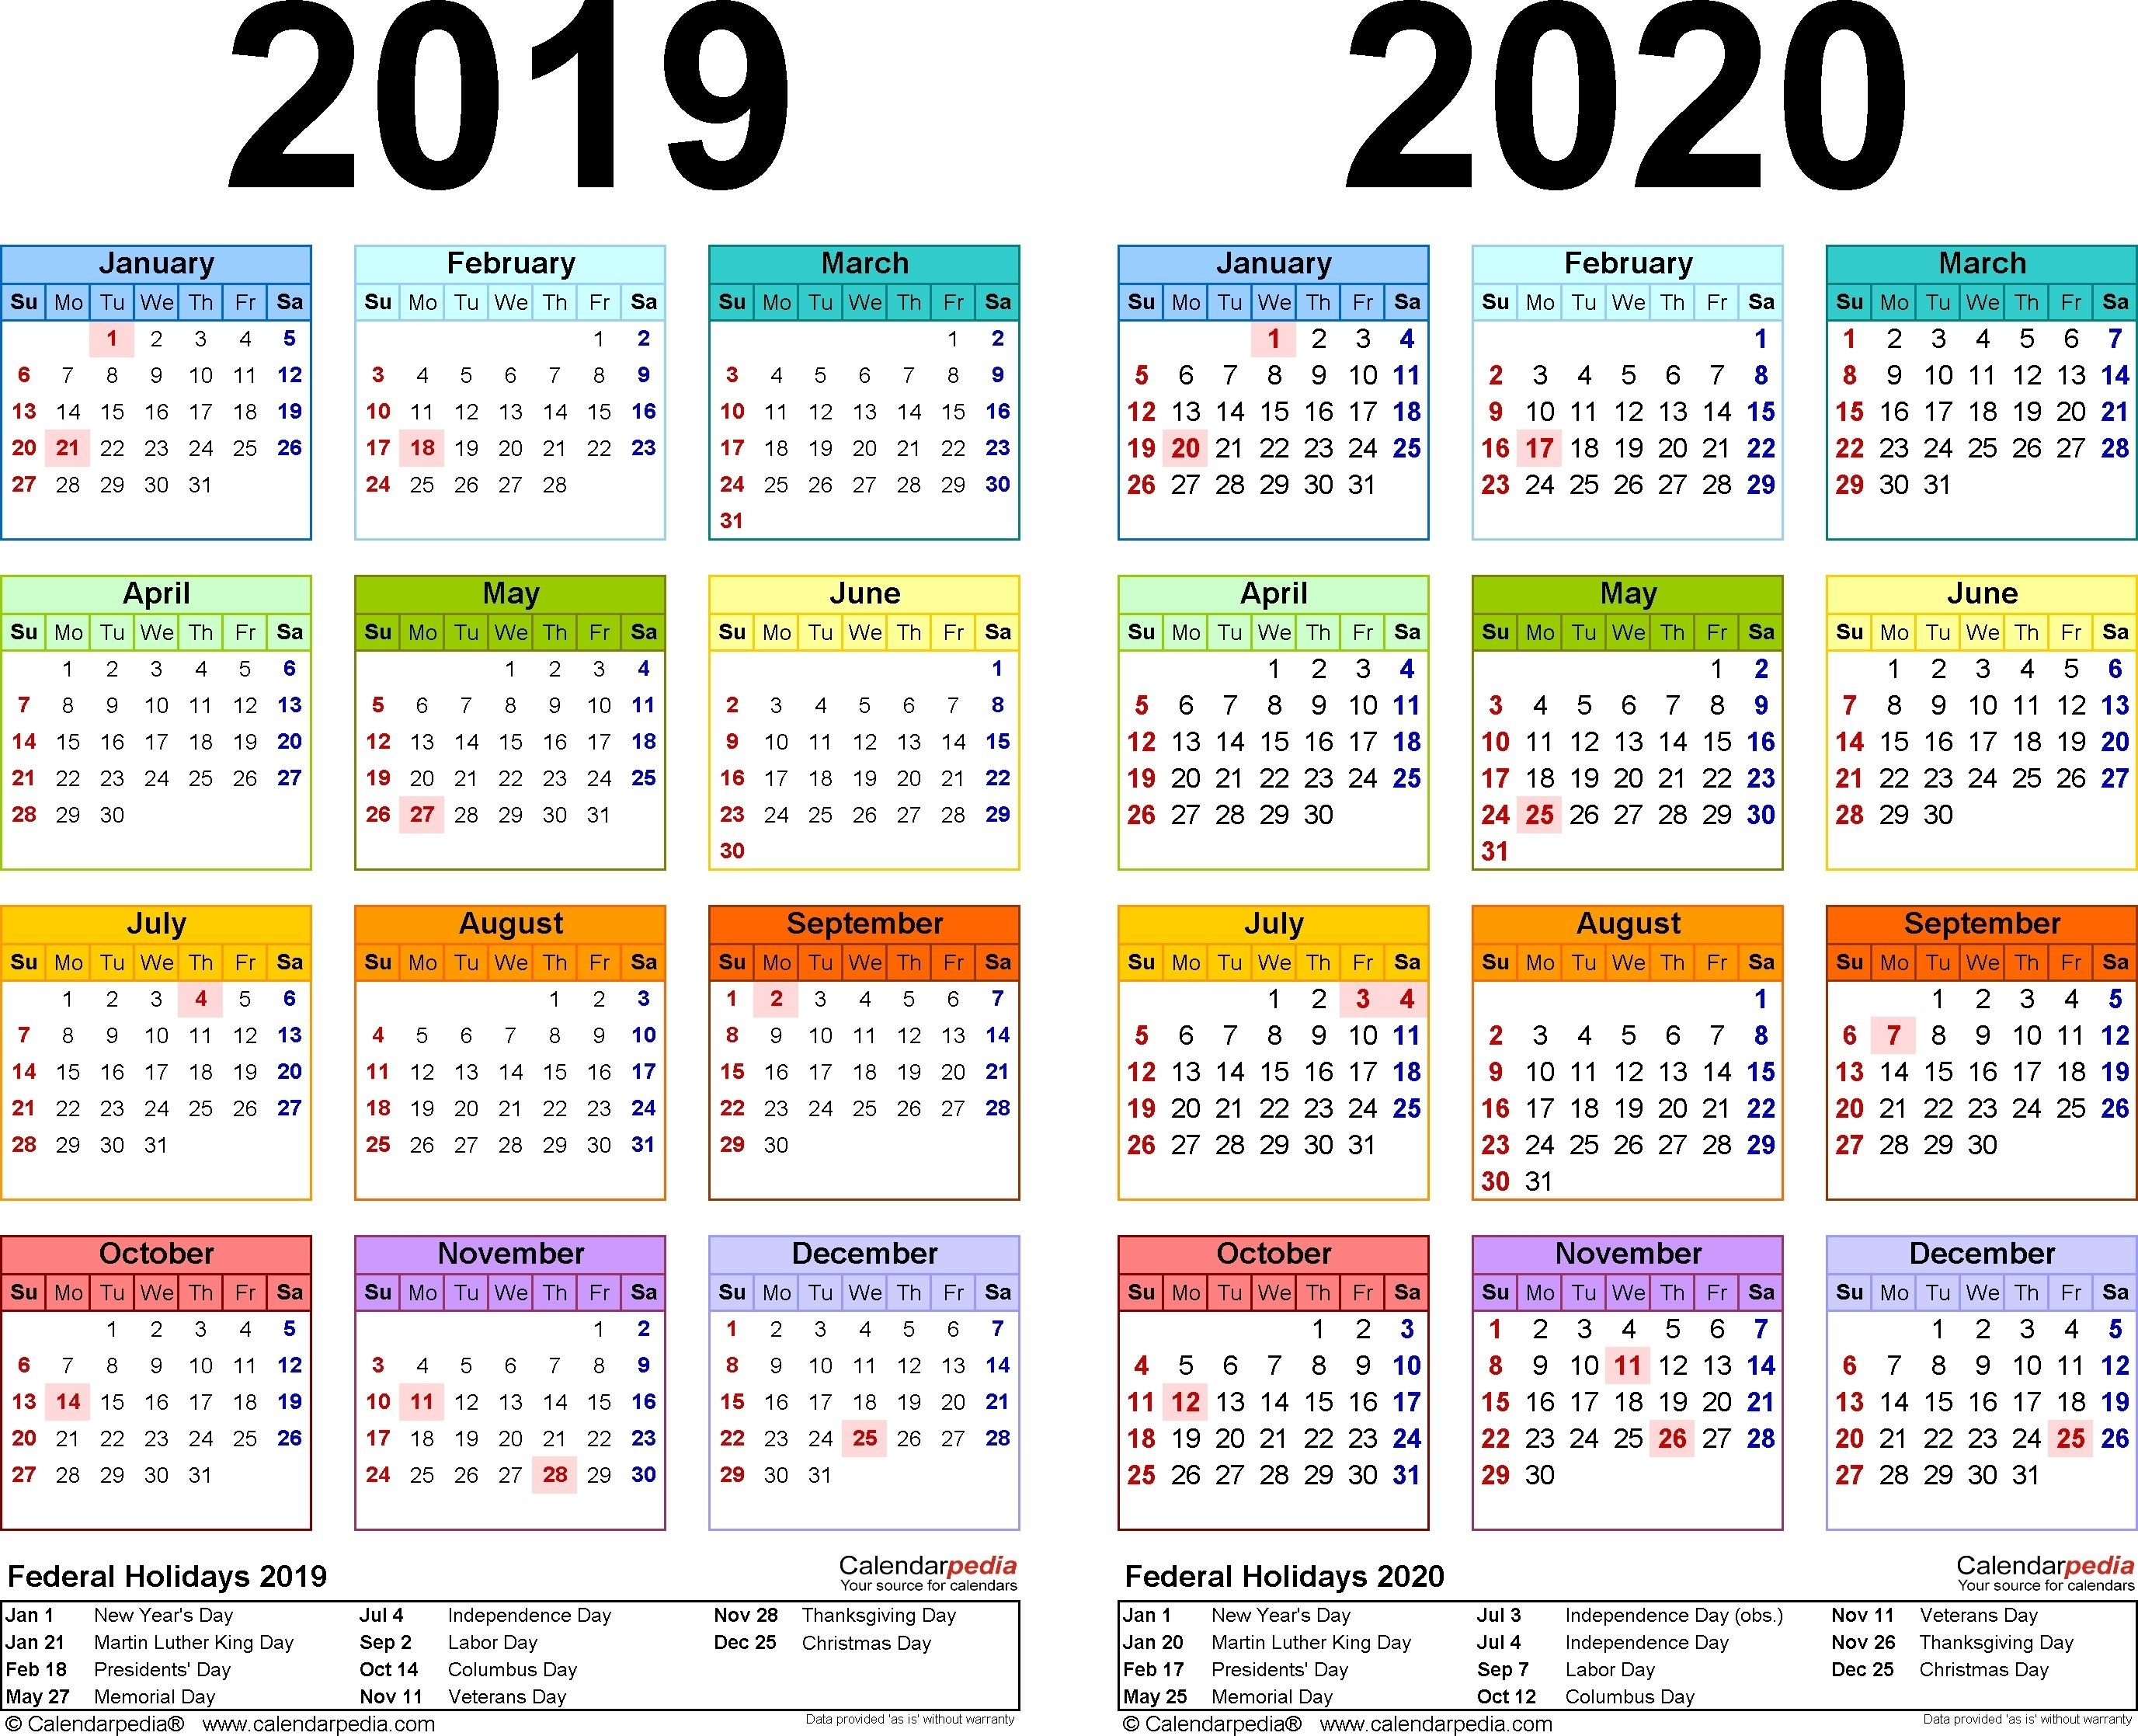 2019-2020 Calendar - Free Printable Two-Year Pdf Calendars